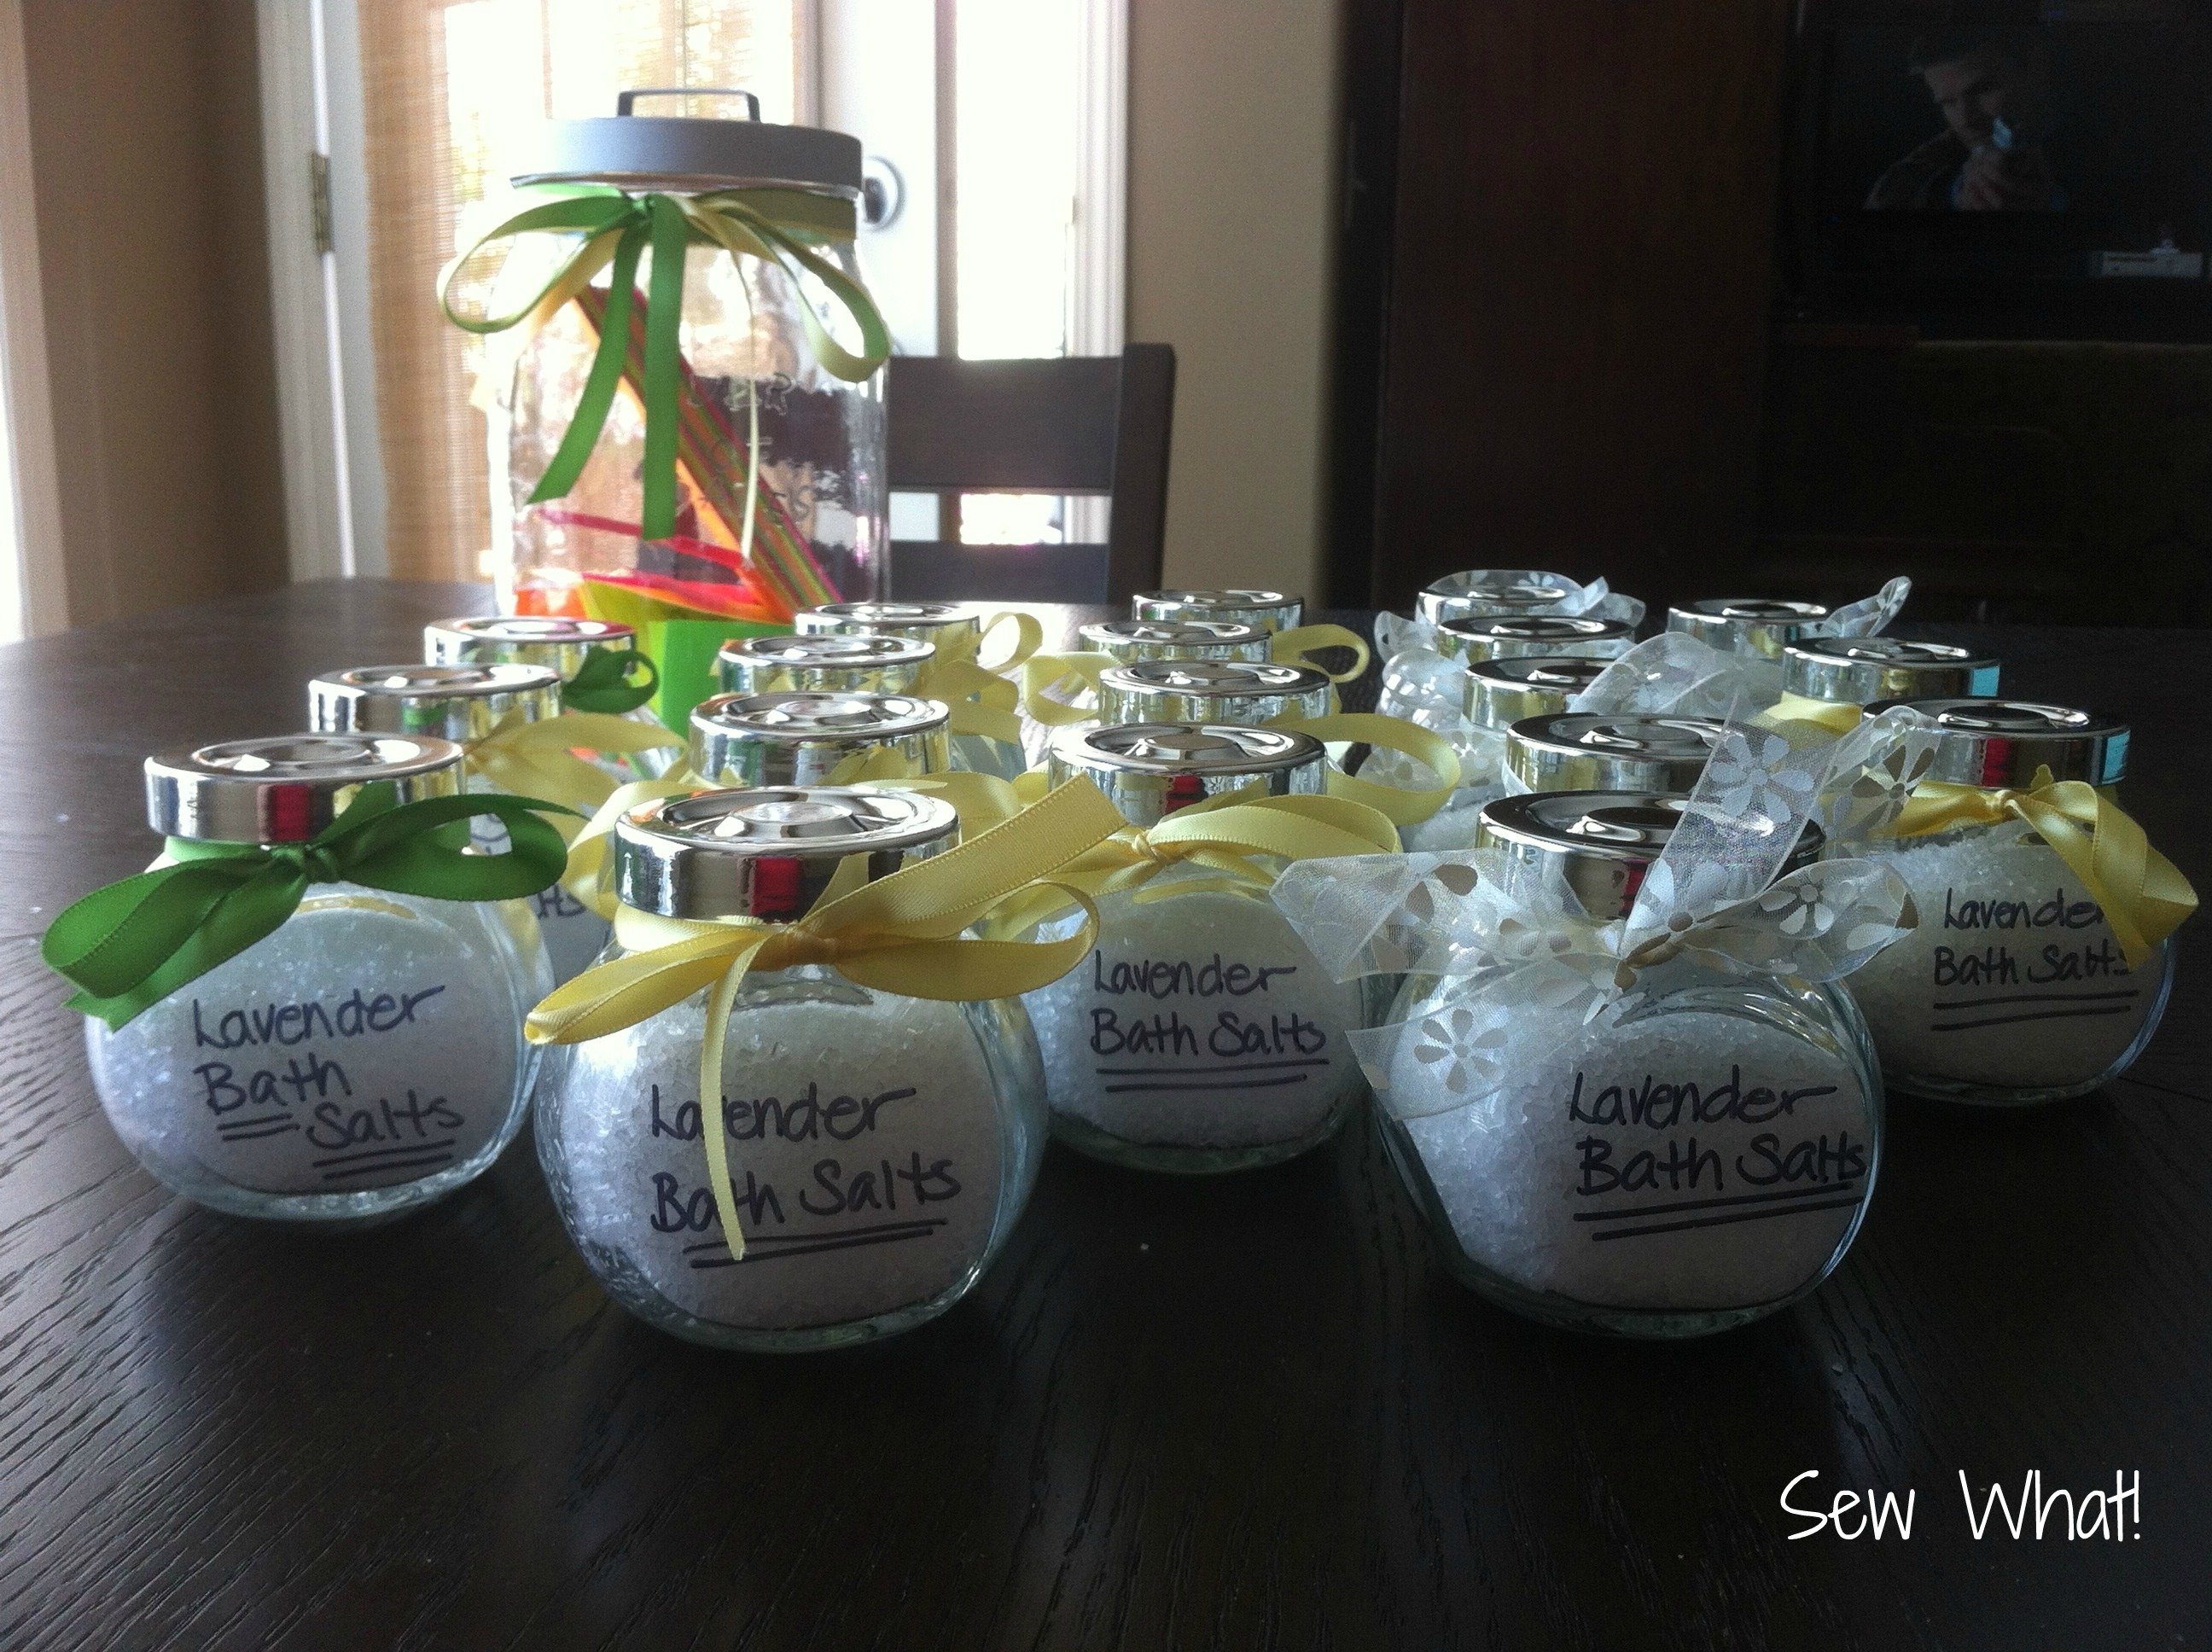 10 awesome pinterest bridal shower gift ideas bridal shower ideas sew what